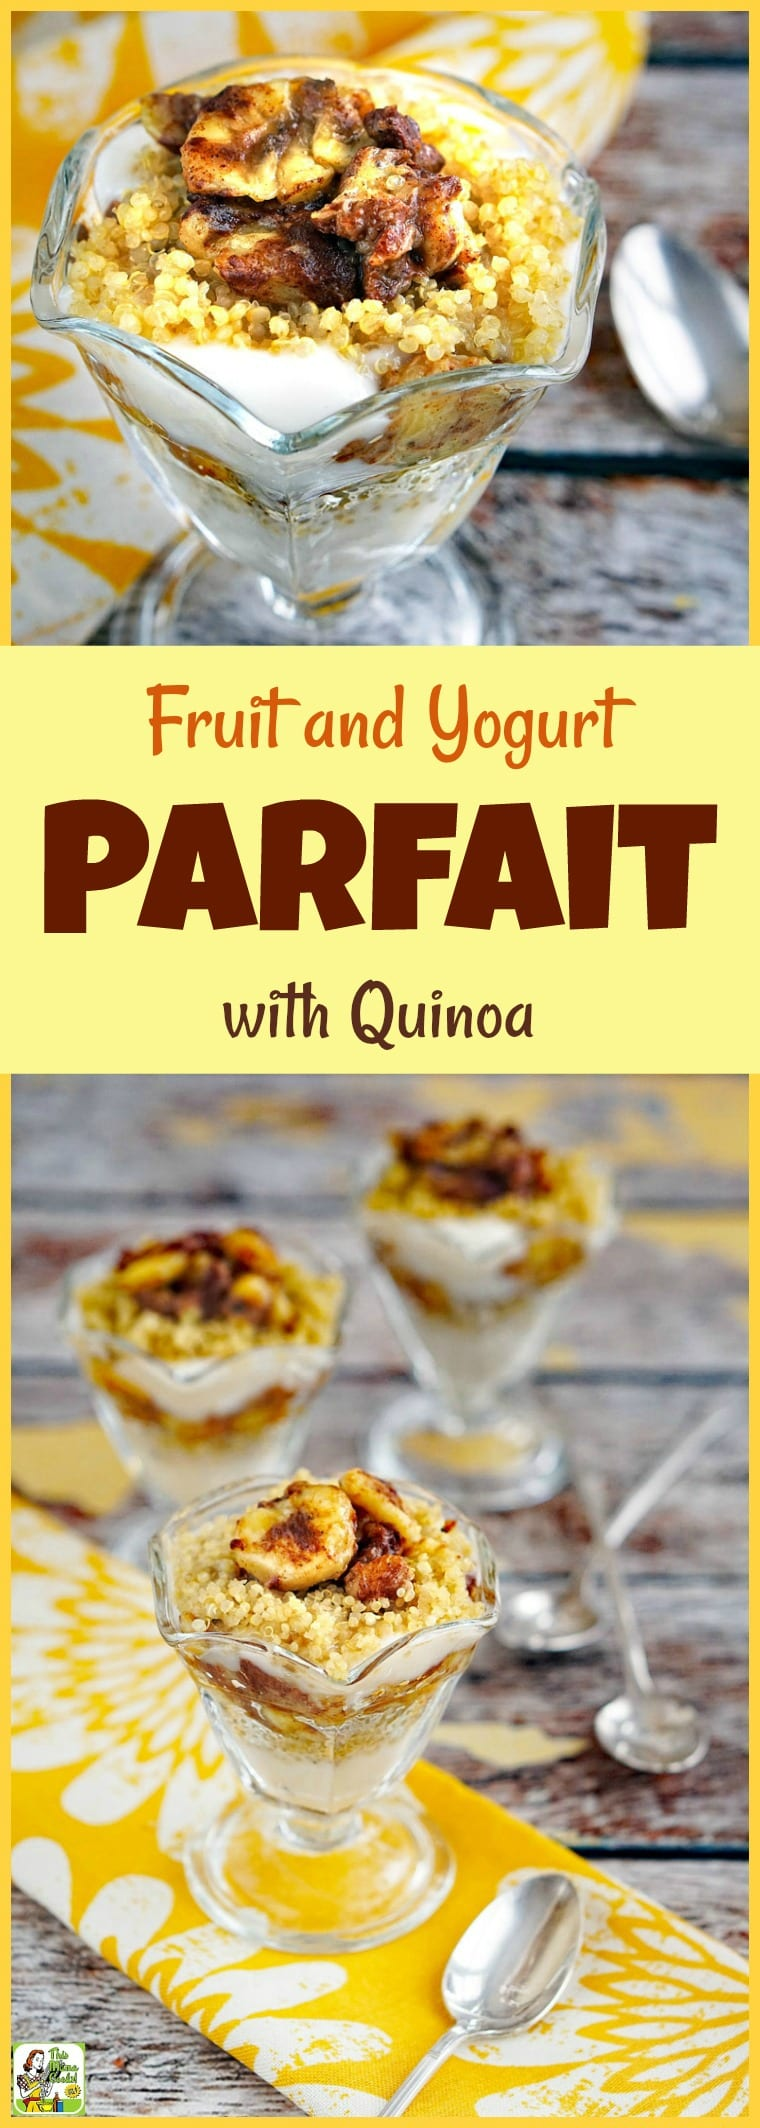 This Fruit and Yogurt Parfait with Quinoa recipe is gluten free and dairy free. Serve this yogurt parfait as an easy breakfast or healthy dessert. This breakfast parfait is also low FODMAP diet friendly. #recipe #easy #recipeoftheday #healthyrecipes #glutenfree #easyrecipes #breakfast #brunch #snack #snacks #dessert #dessertrecipes #FODMAP #lowFODMAP #quinoa #dairyfree #fruit #bananas #breakfastparfait #yogurtparfait